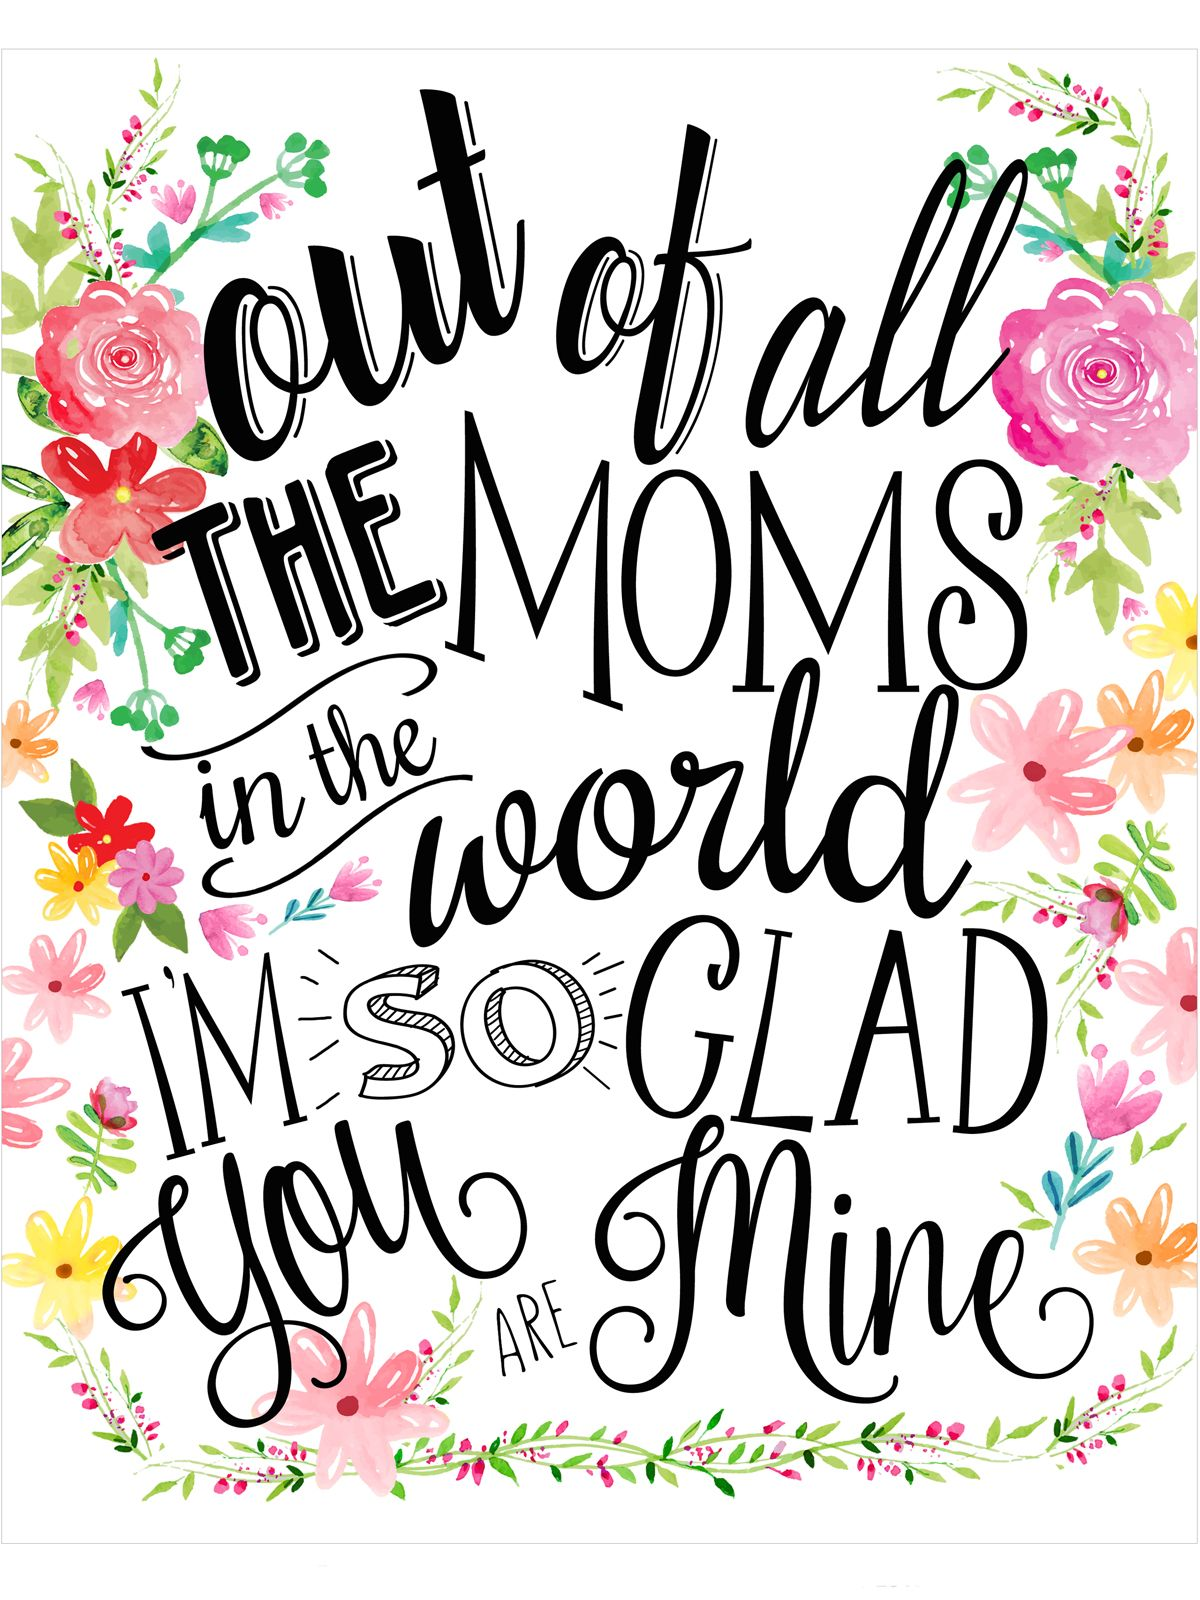 15 free printable mothers day cards ecards to print for mothers day kristyandbryce Images